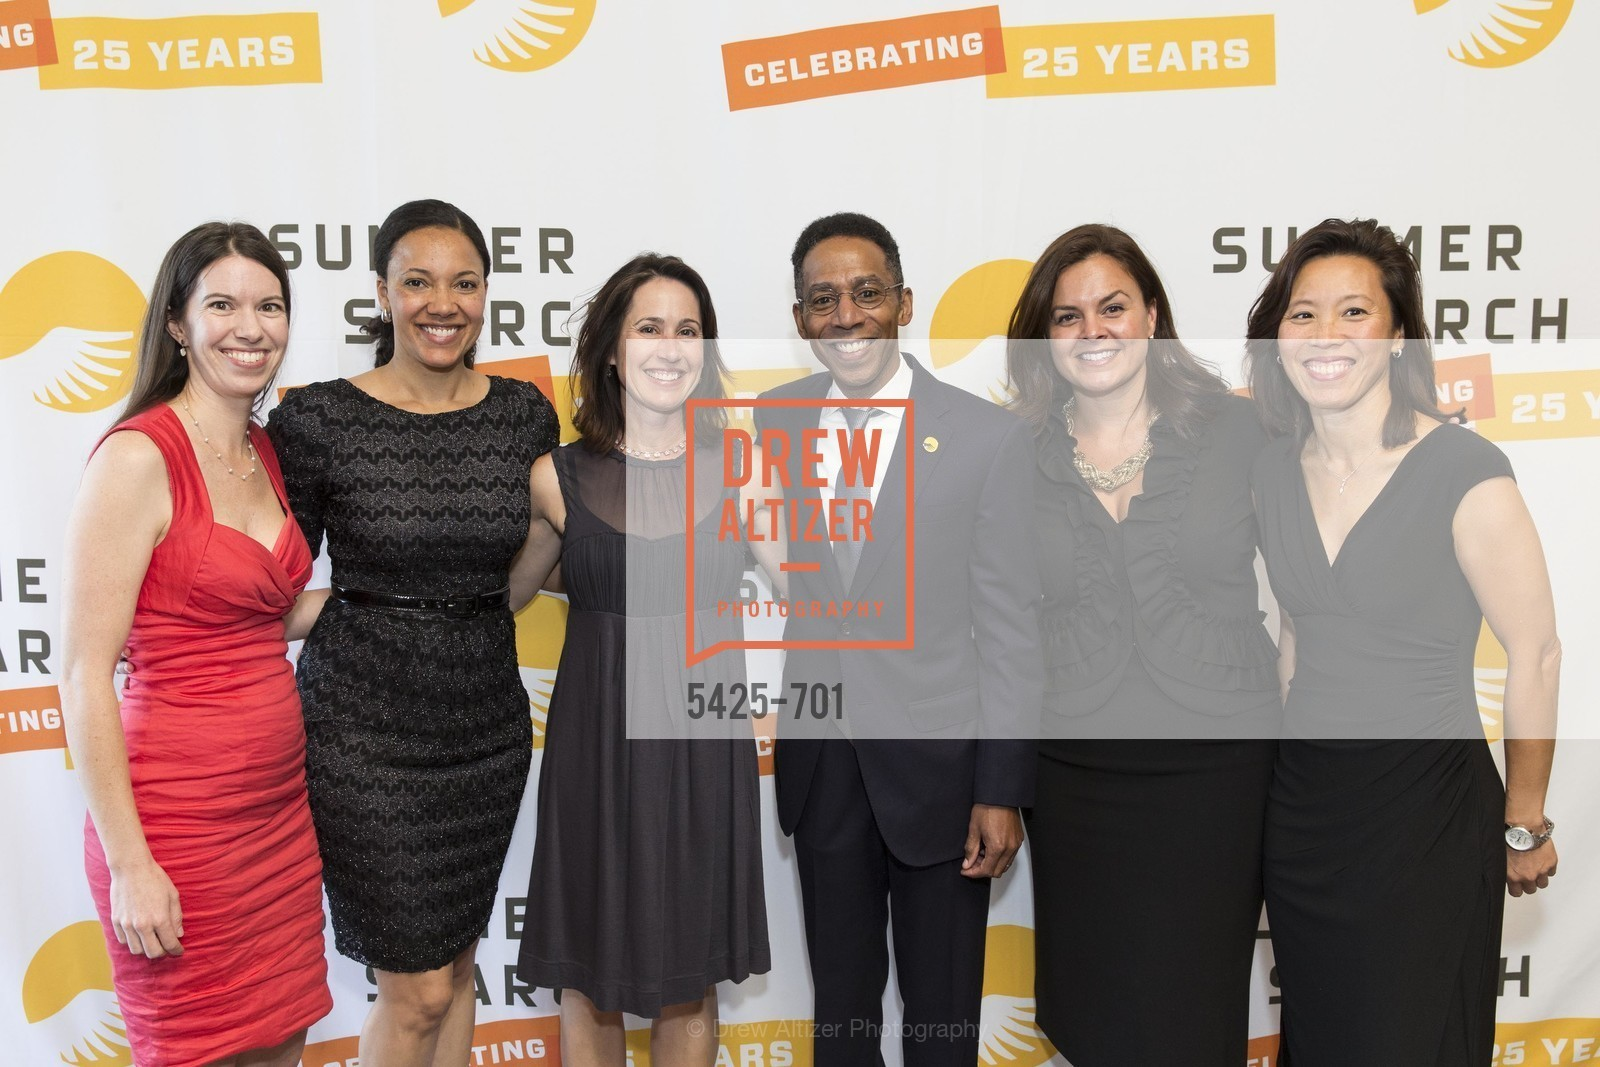 Jessica Vibberts, Amy Saxton, Liz Hurst, Kevin Gay, Guadalupe Nickell, Sandra LaFleur, SUMMER SEARCH San Francisco 25th Anniversary, US, May 6th, 2015,Drew Altizer, Drew Altizer Photography, full-service agency, private events, San Francisco photographer, photographer california